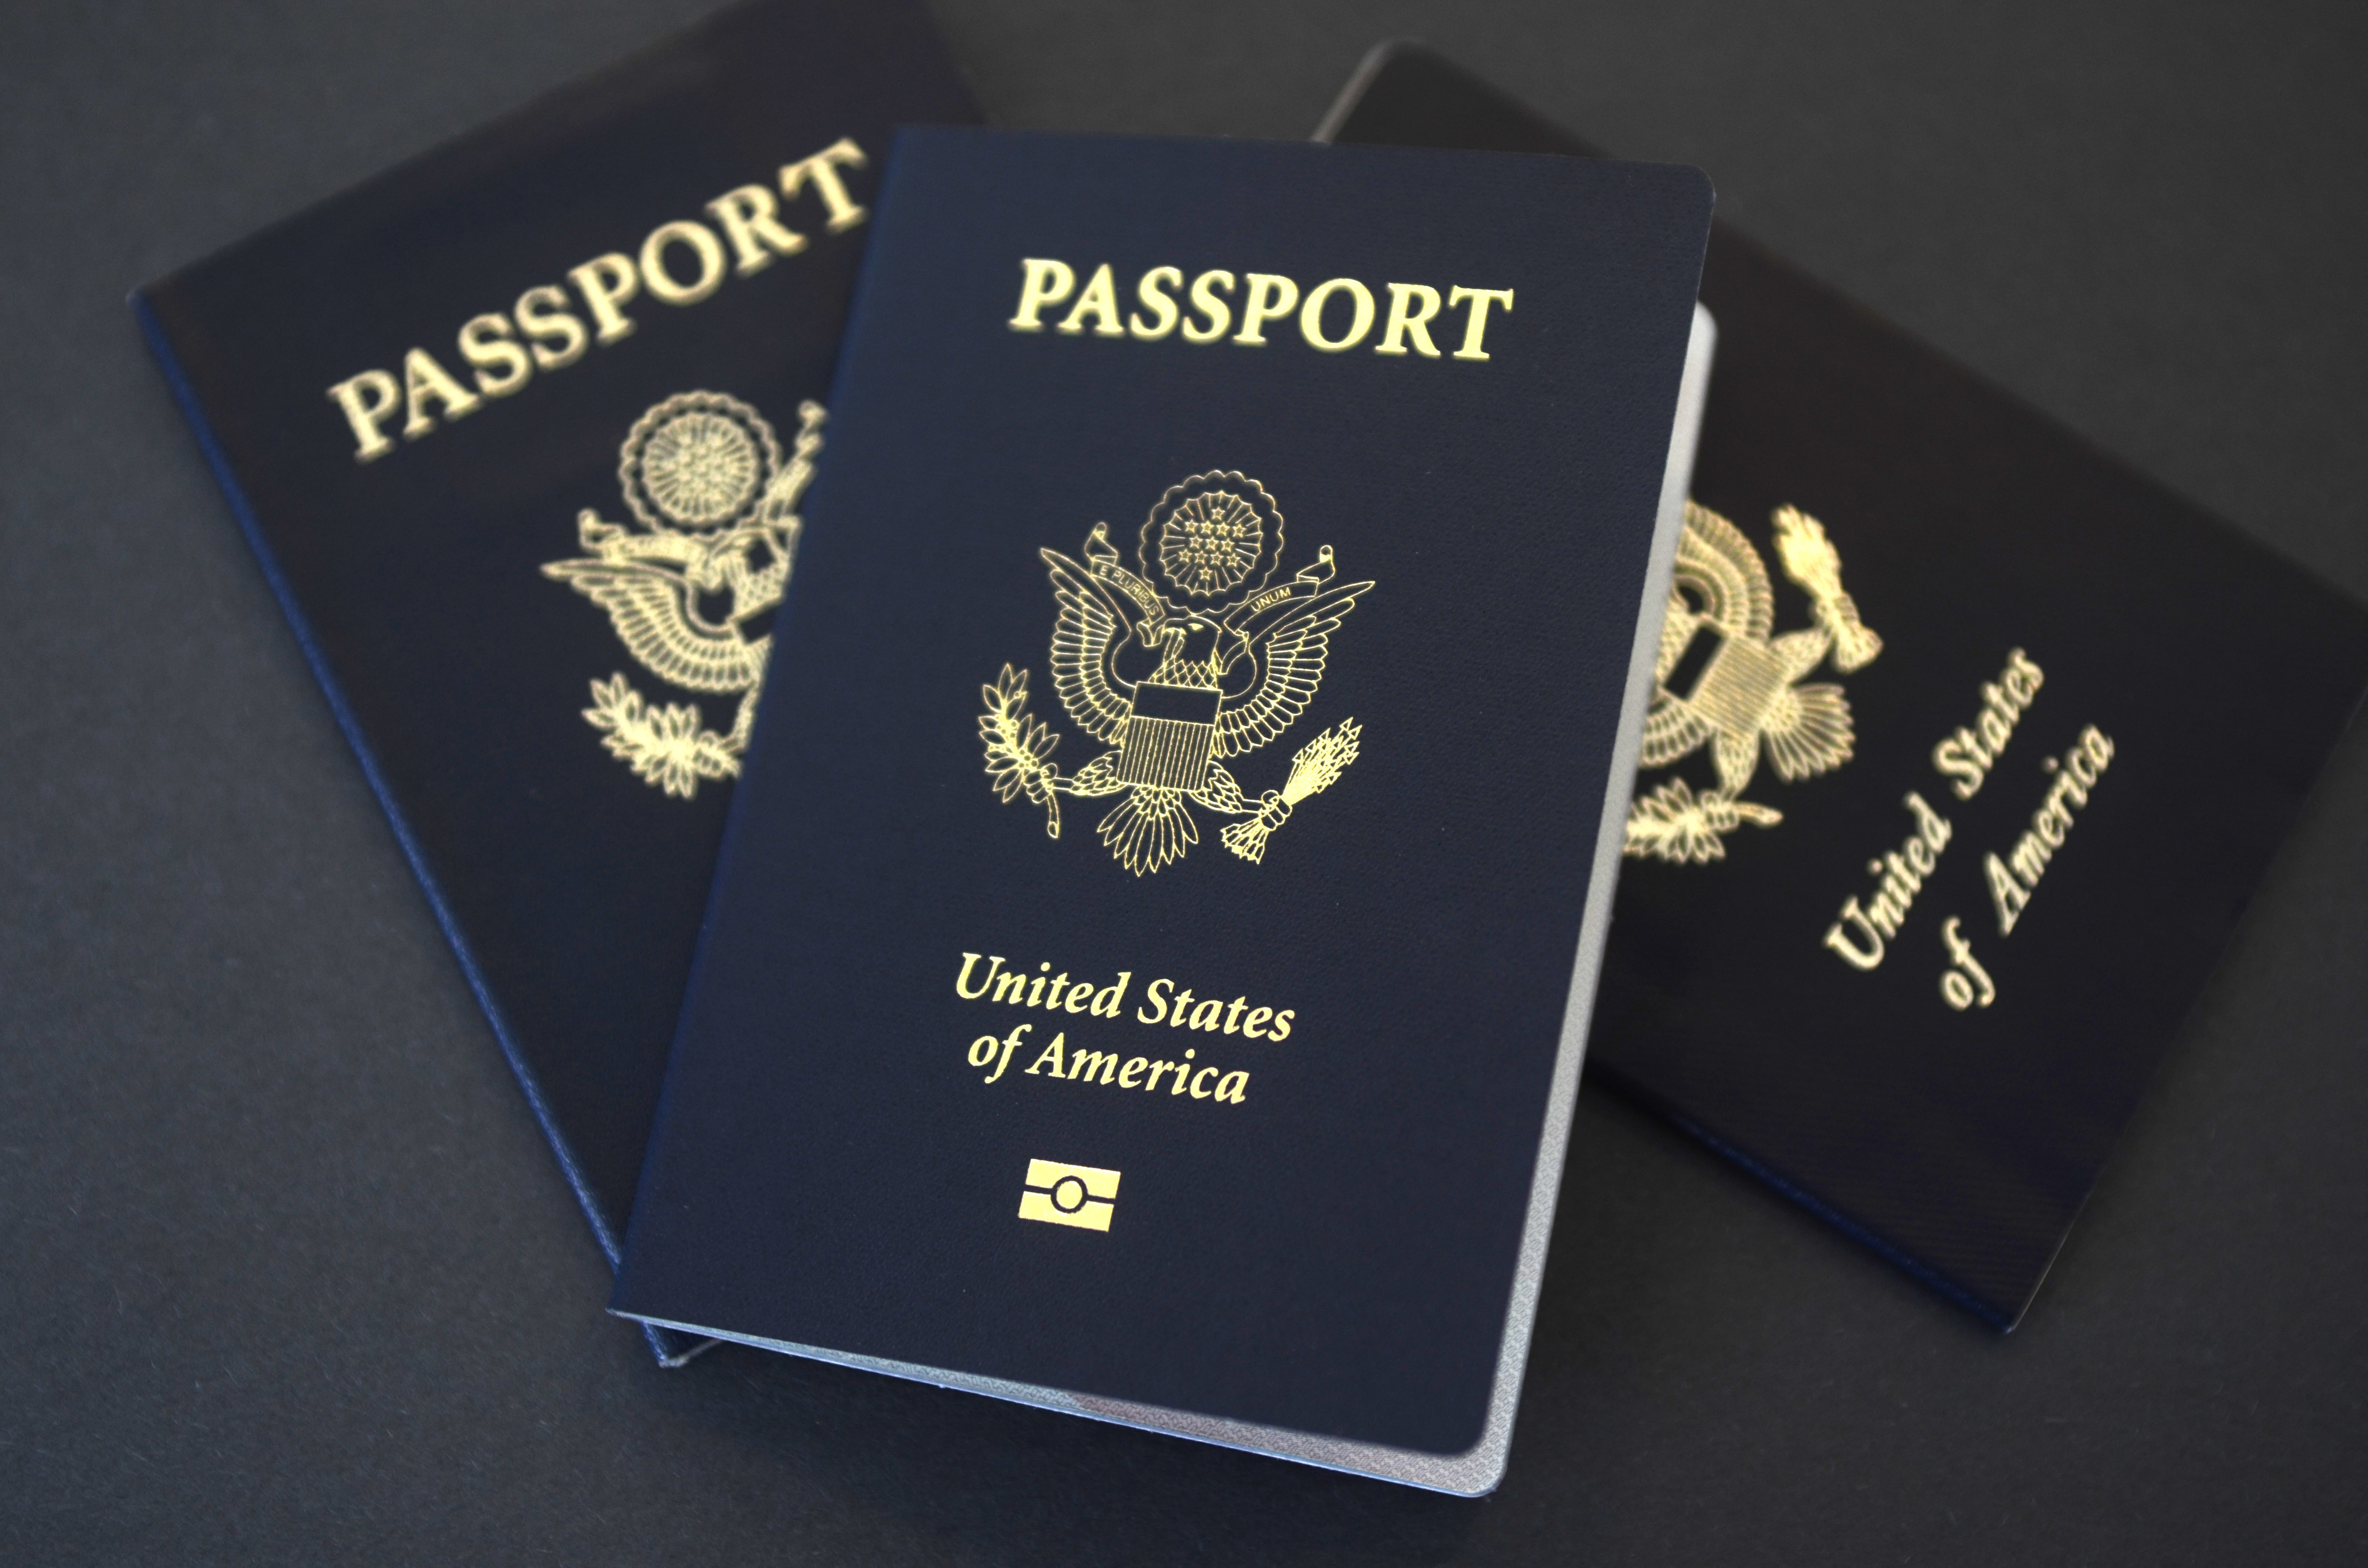 In this May 9, 2017 photo, U.S. passports lie on a table in Dallas, Texas. The U.S. State Department is in the middle of a record year for processing passport applications, with 20.5 million renewals and applications for new passports expected.